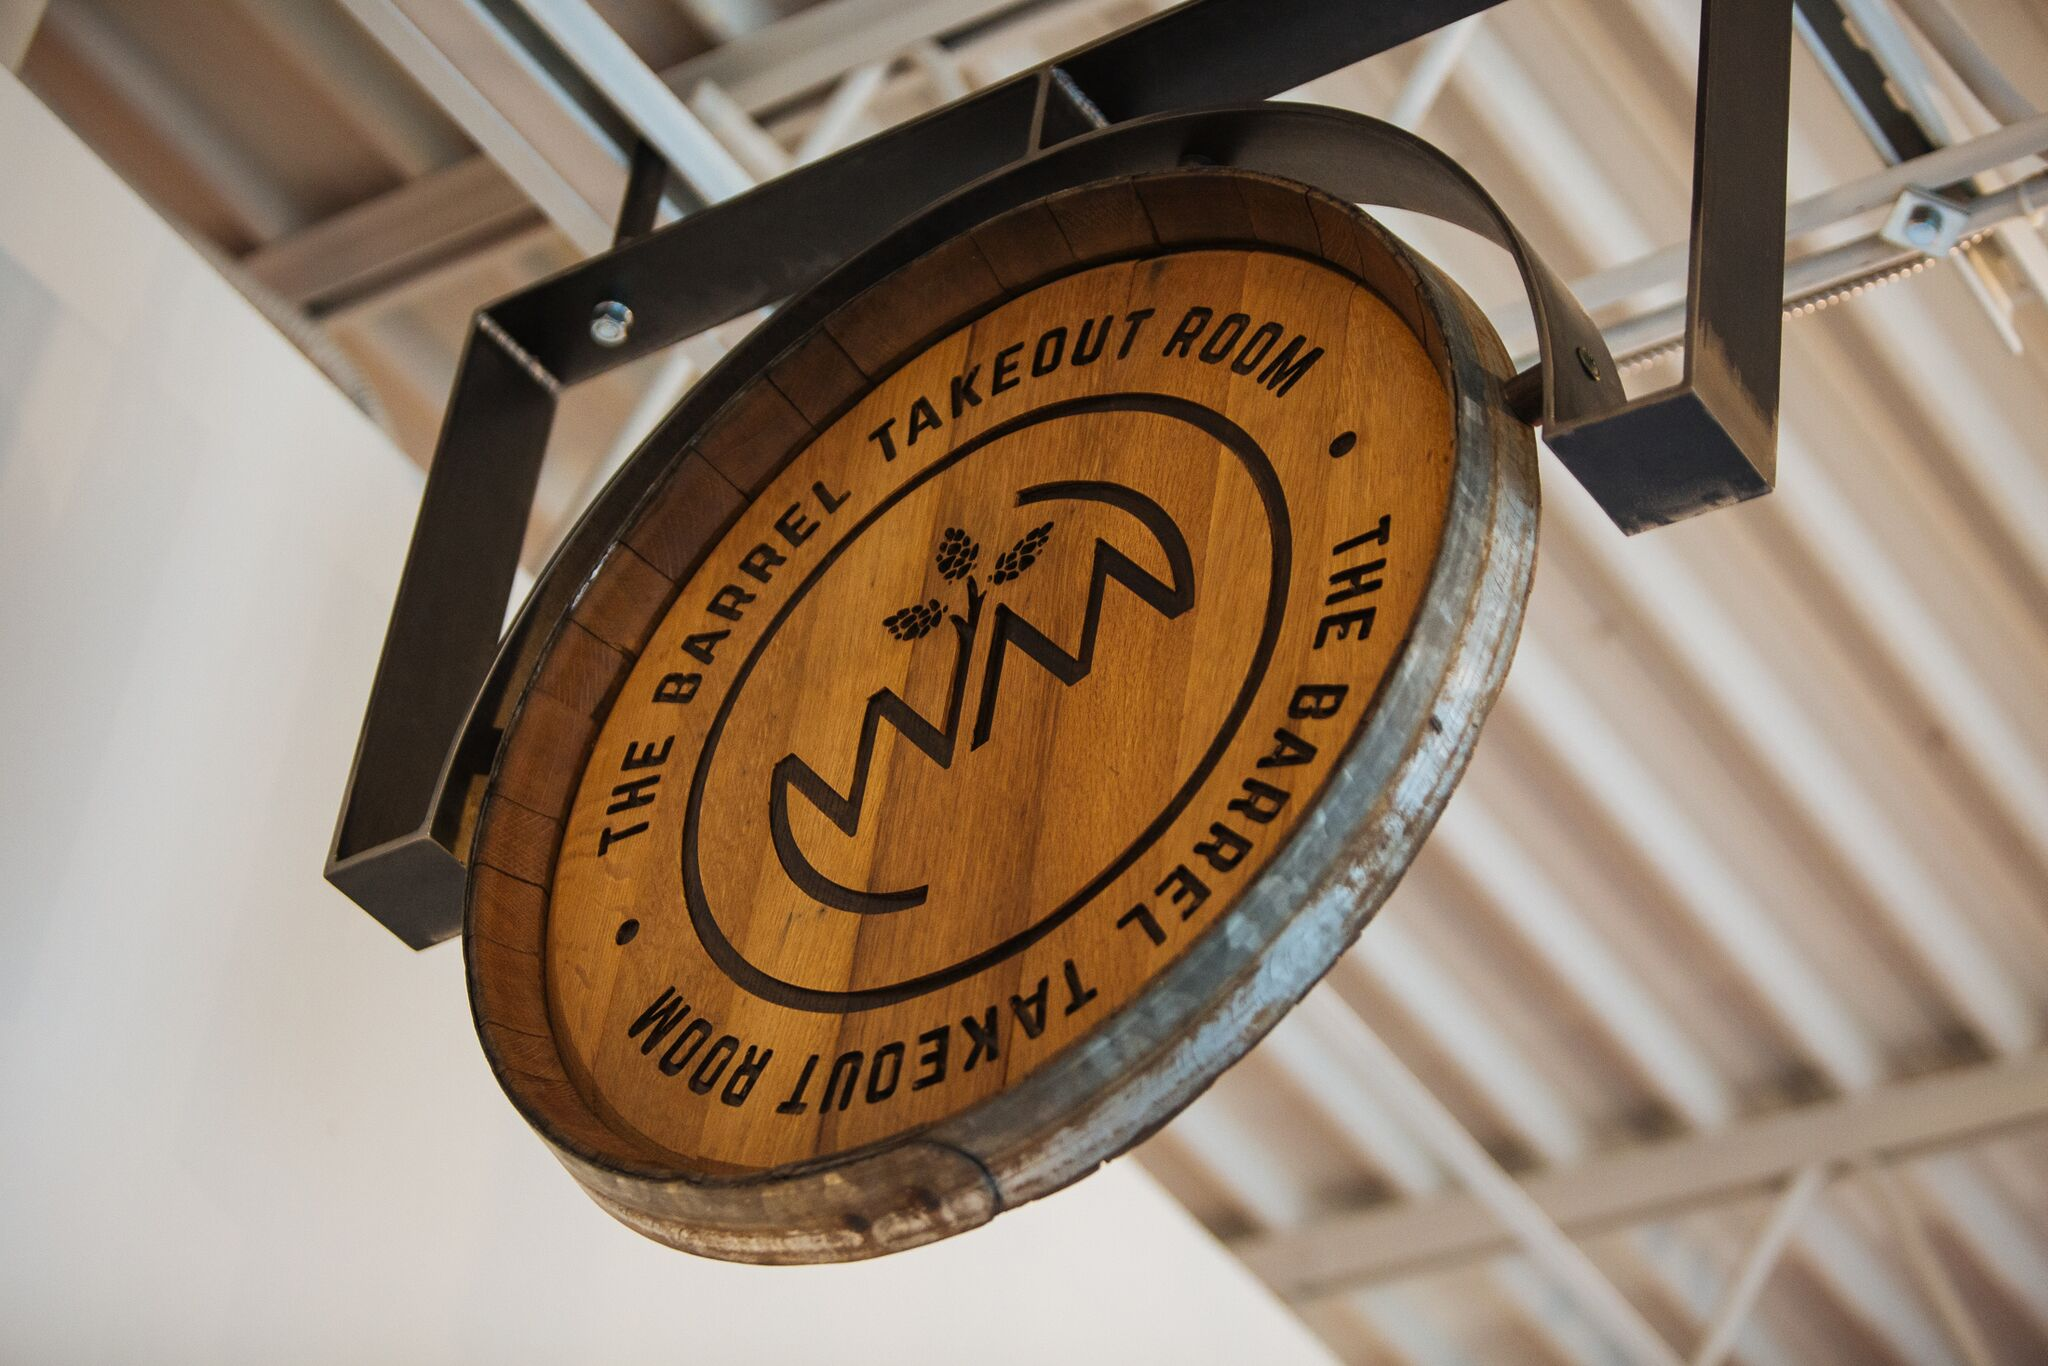 Wild Mind Artisan Ales - The Barrel Takeout Room Sign.jpeg